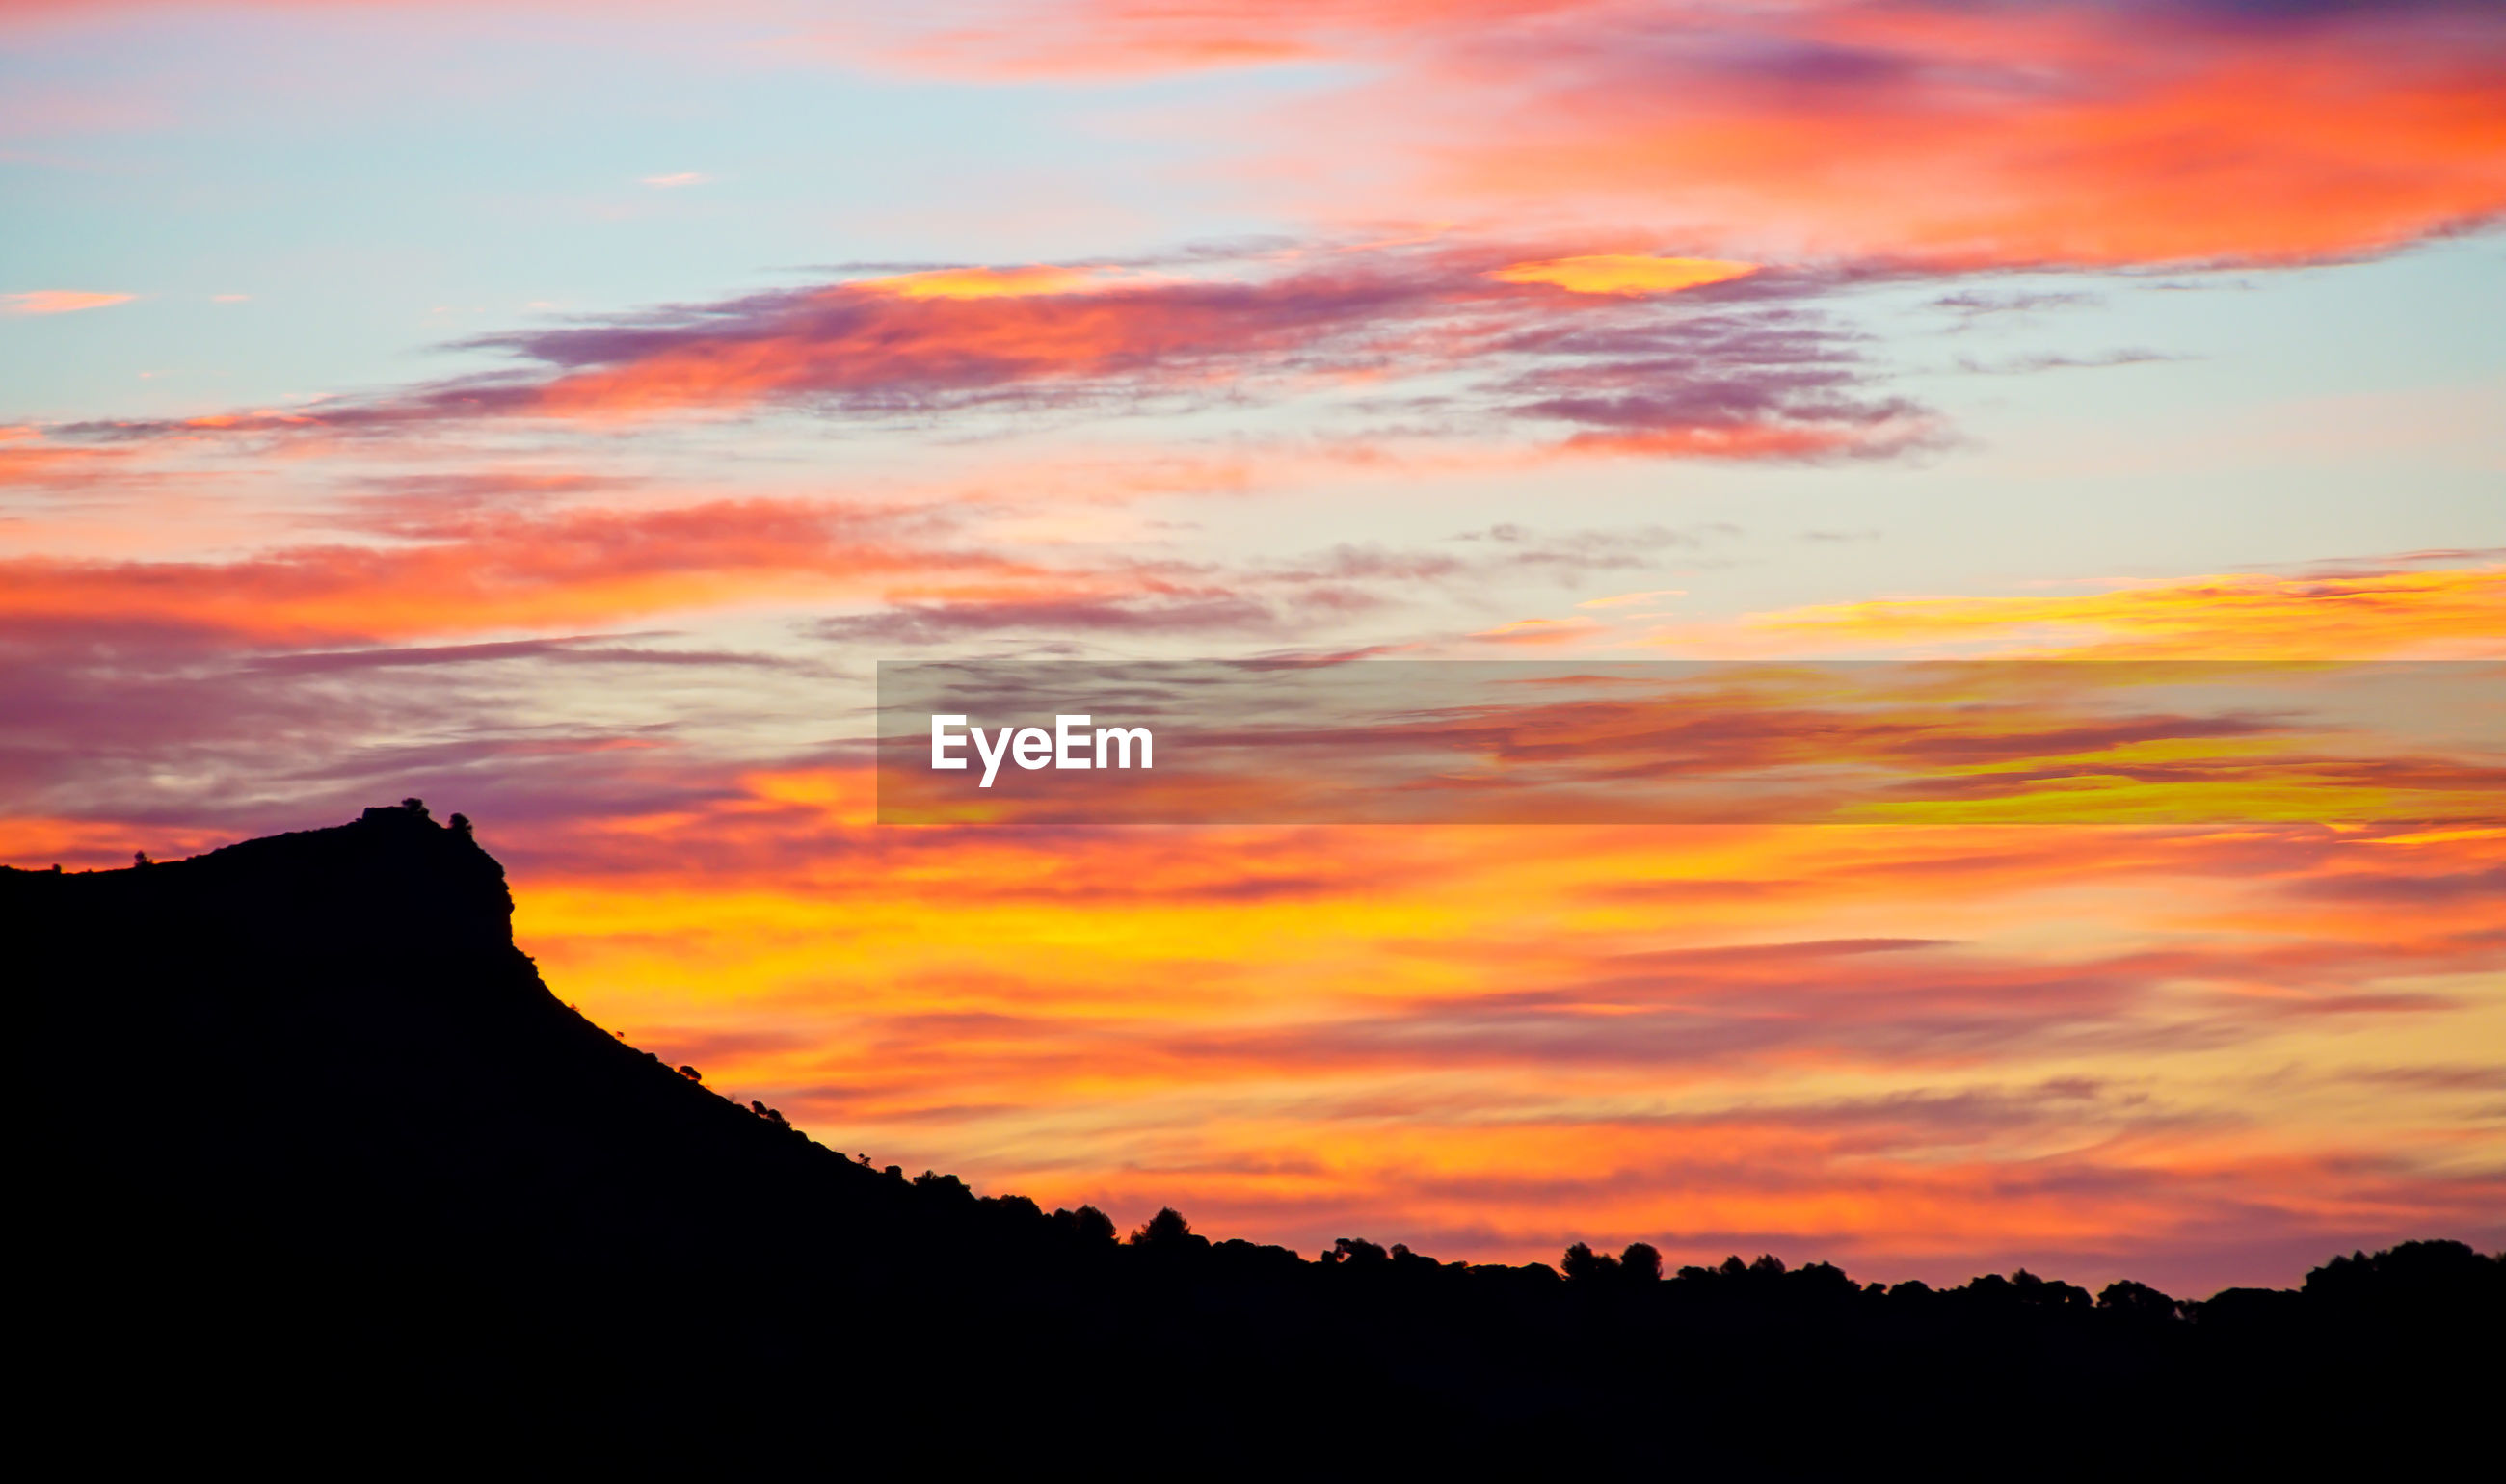 LOW ANGLE VIEW OF SILHOUETTE MOUNTAIN AGAINST ORANGE SUNSET SKY